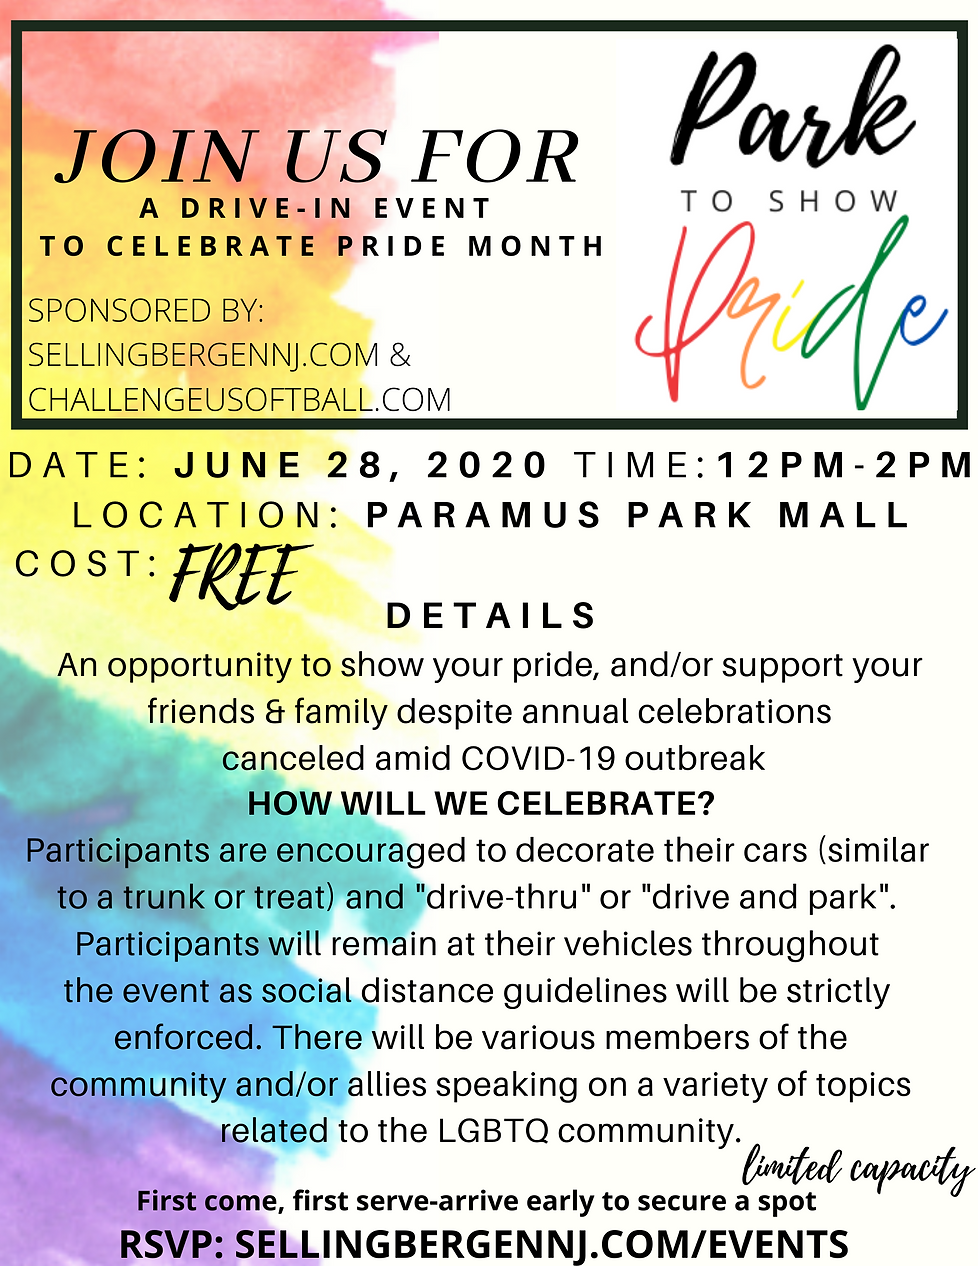 park to show pride image.png